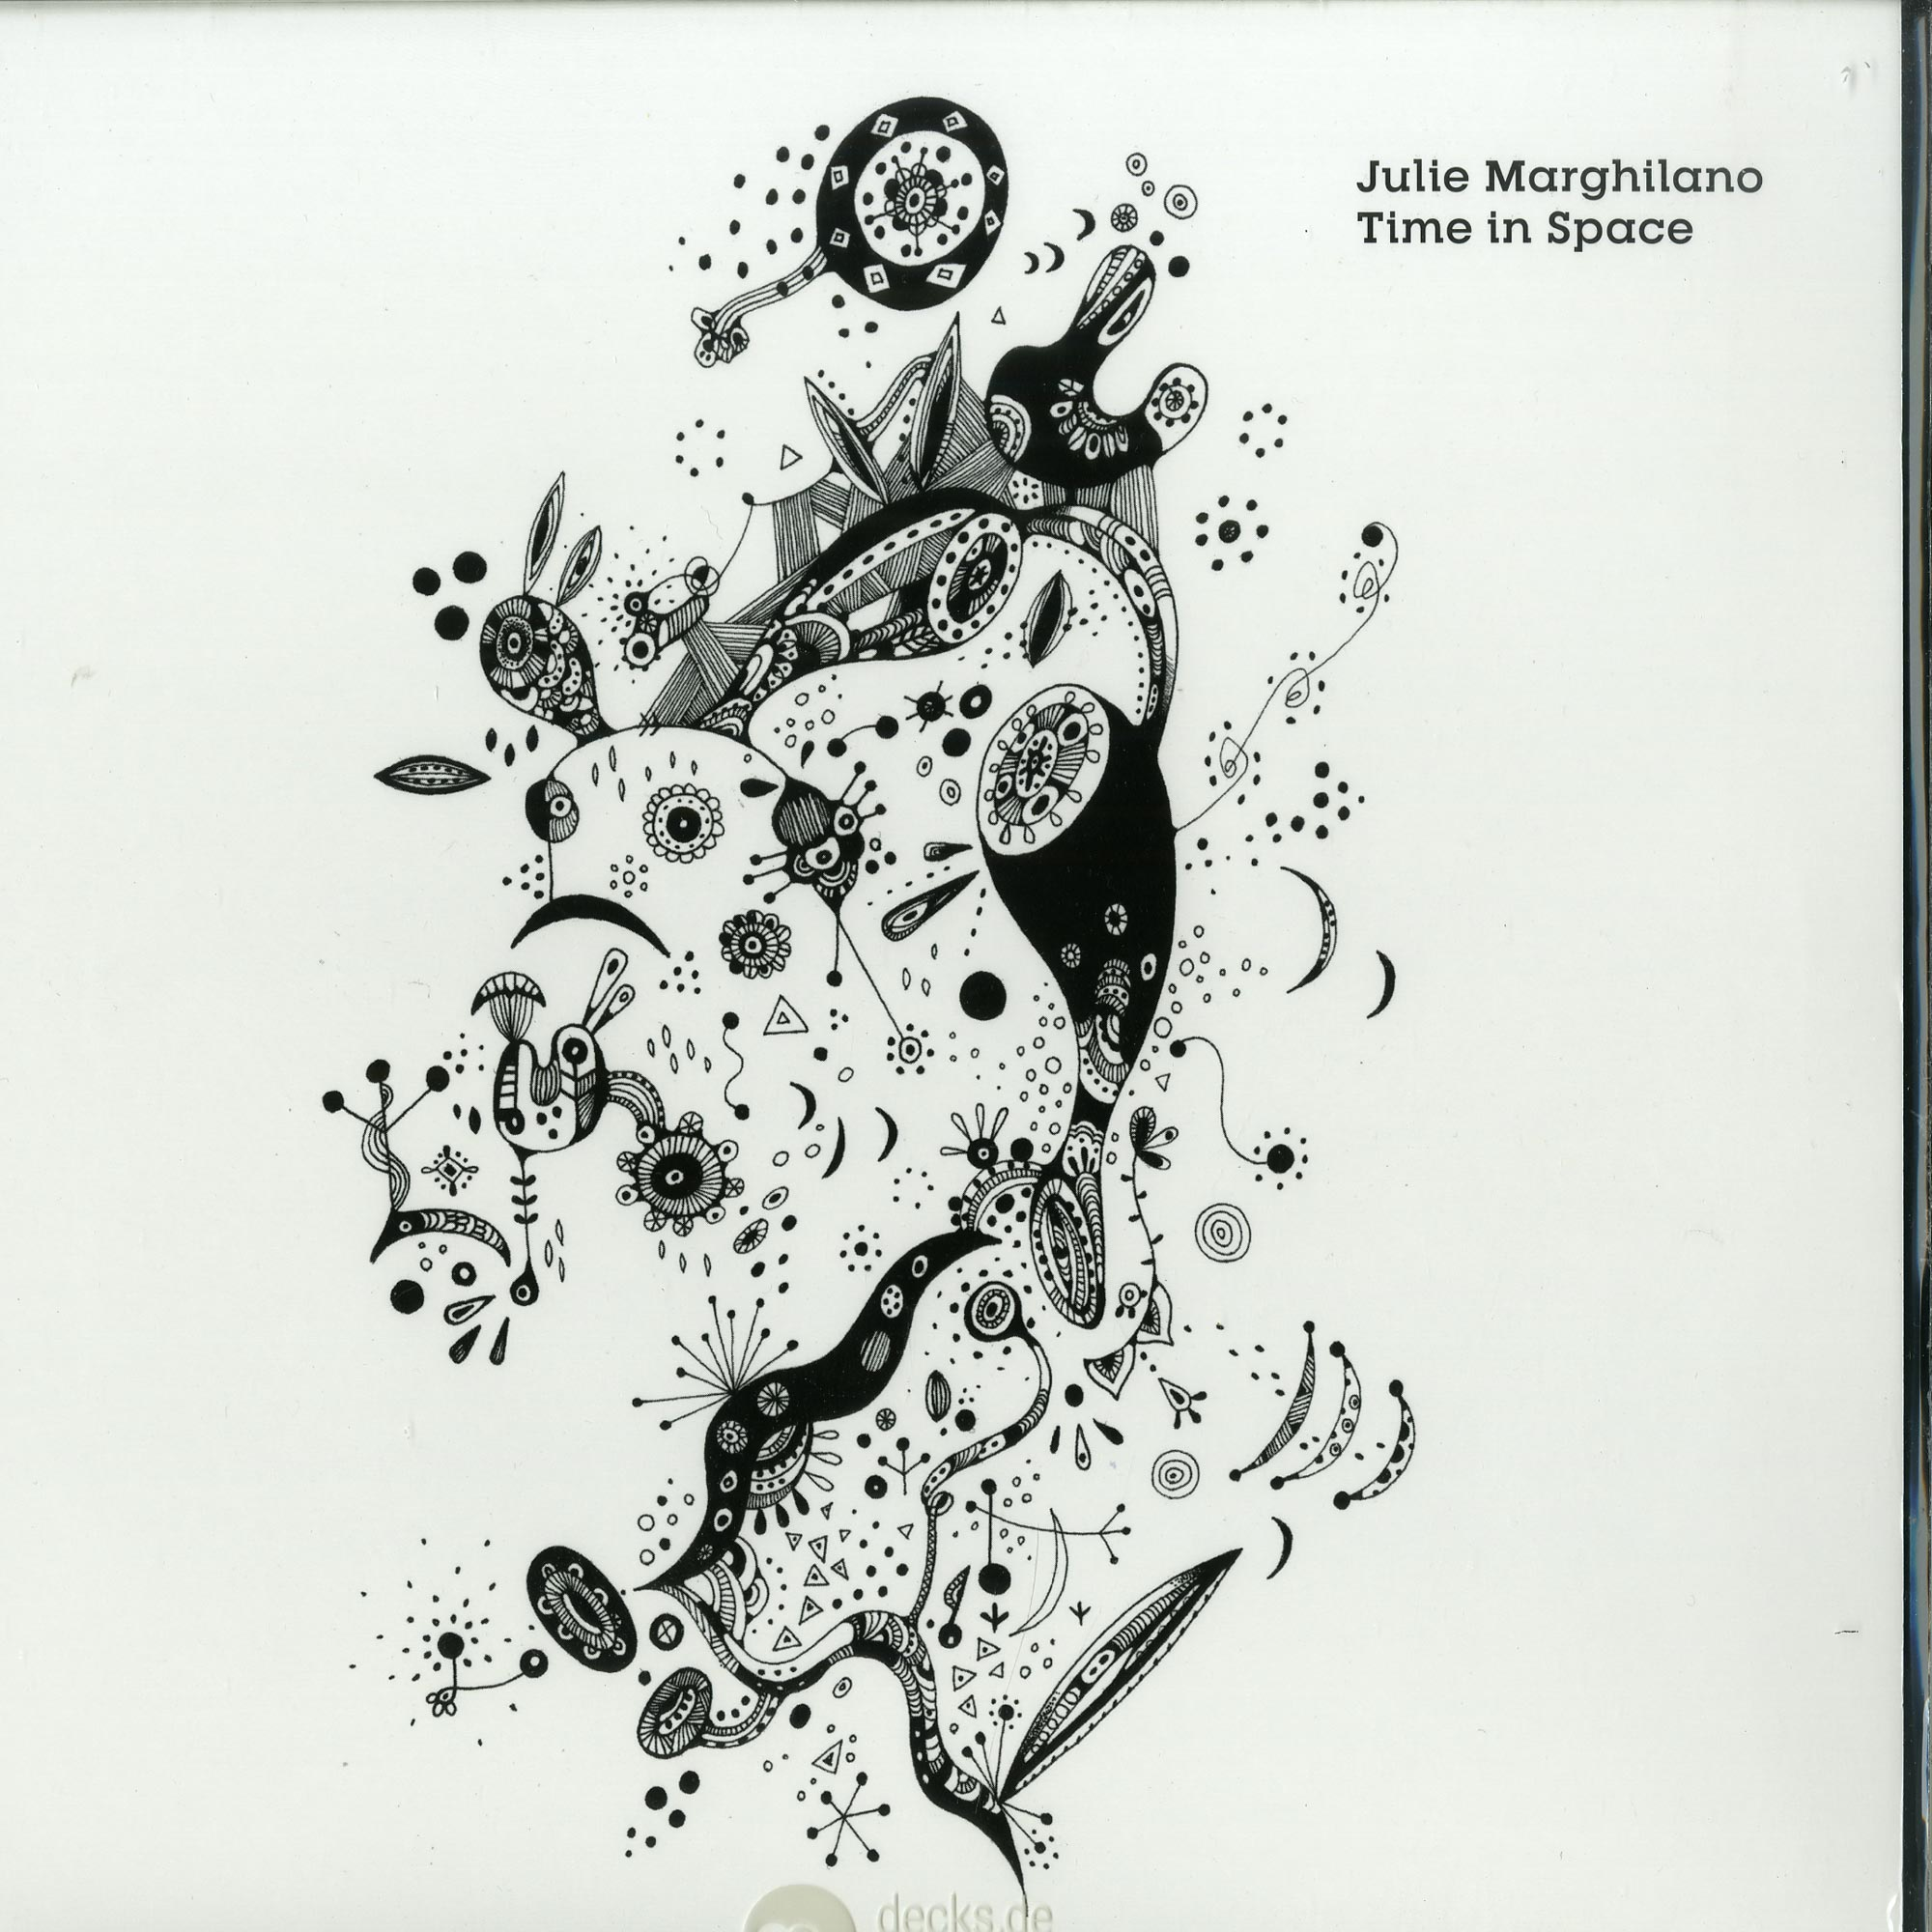 Julie Marghilano - TIME IN SPACE